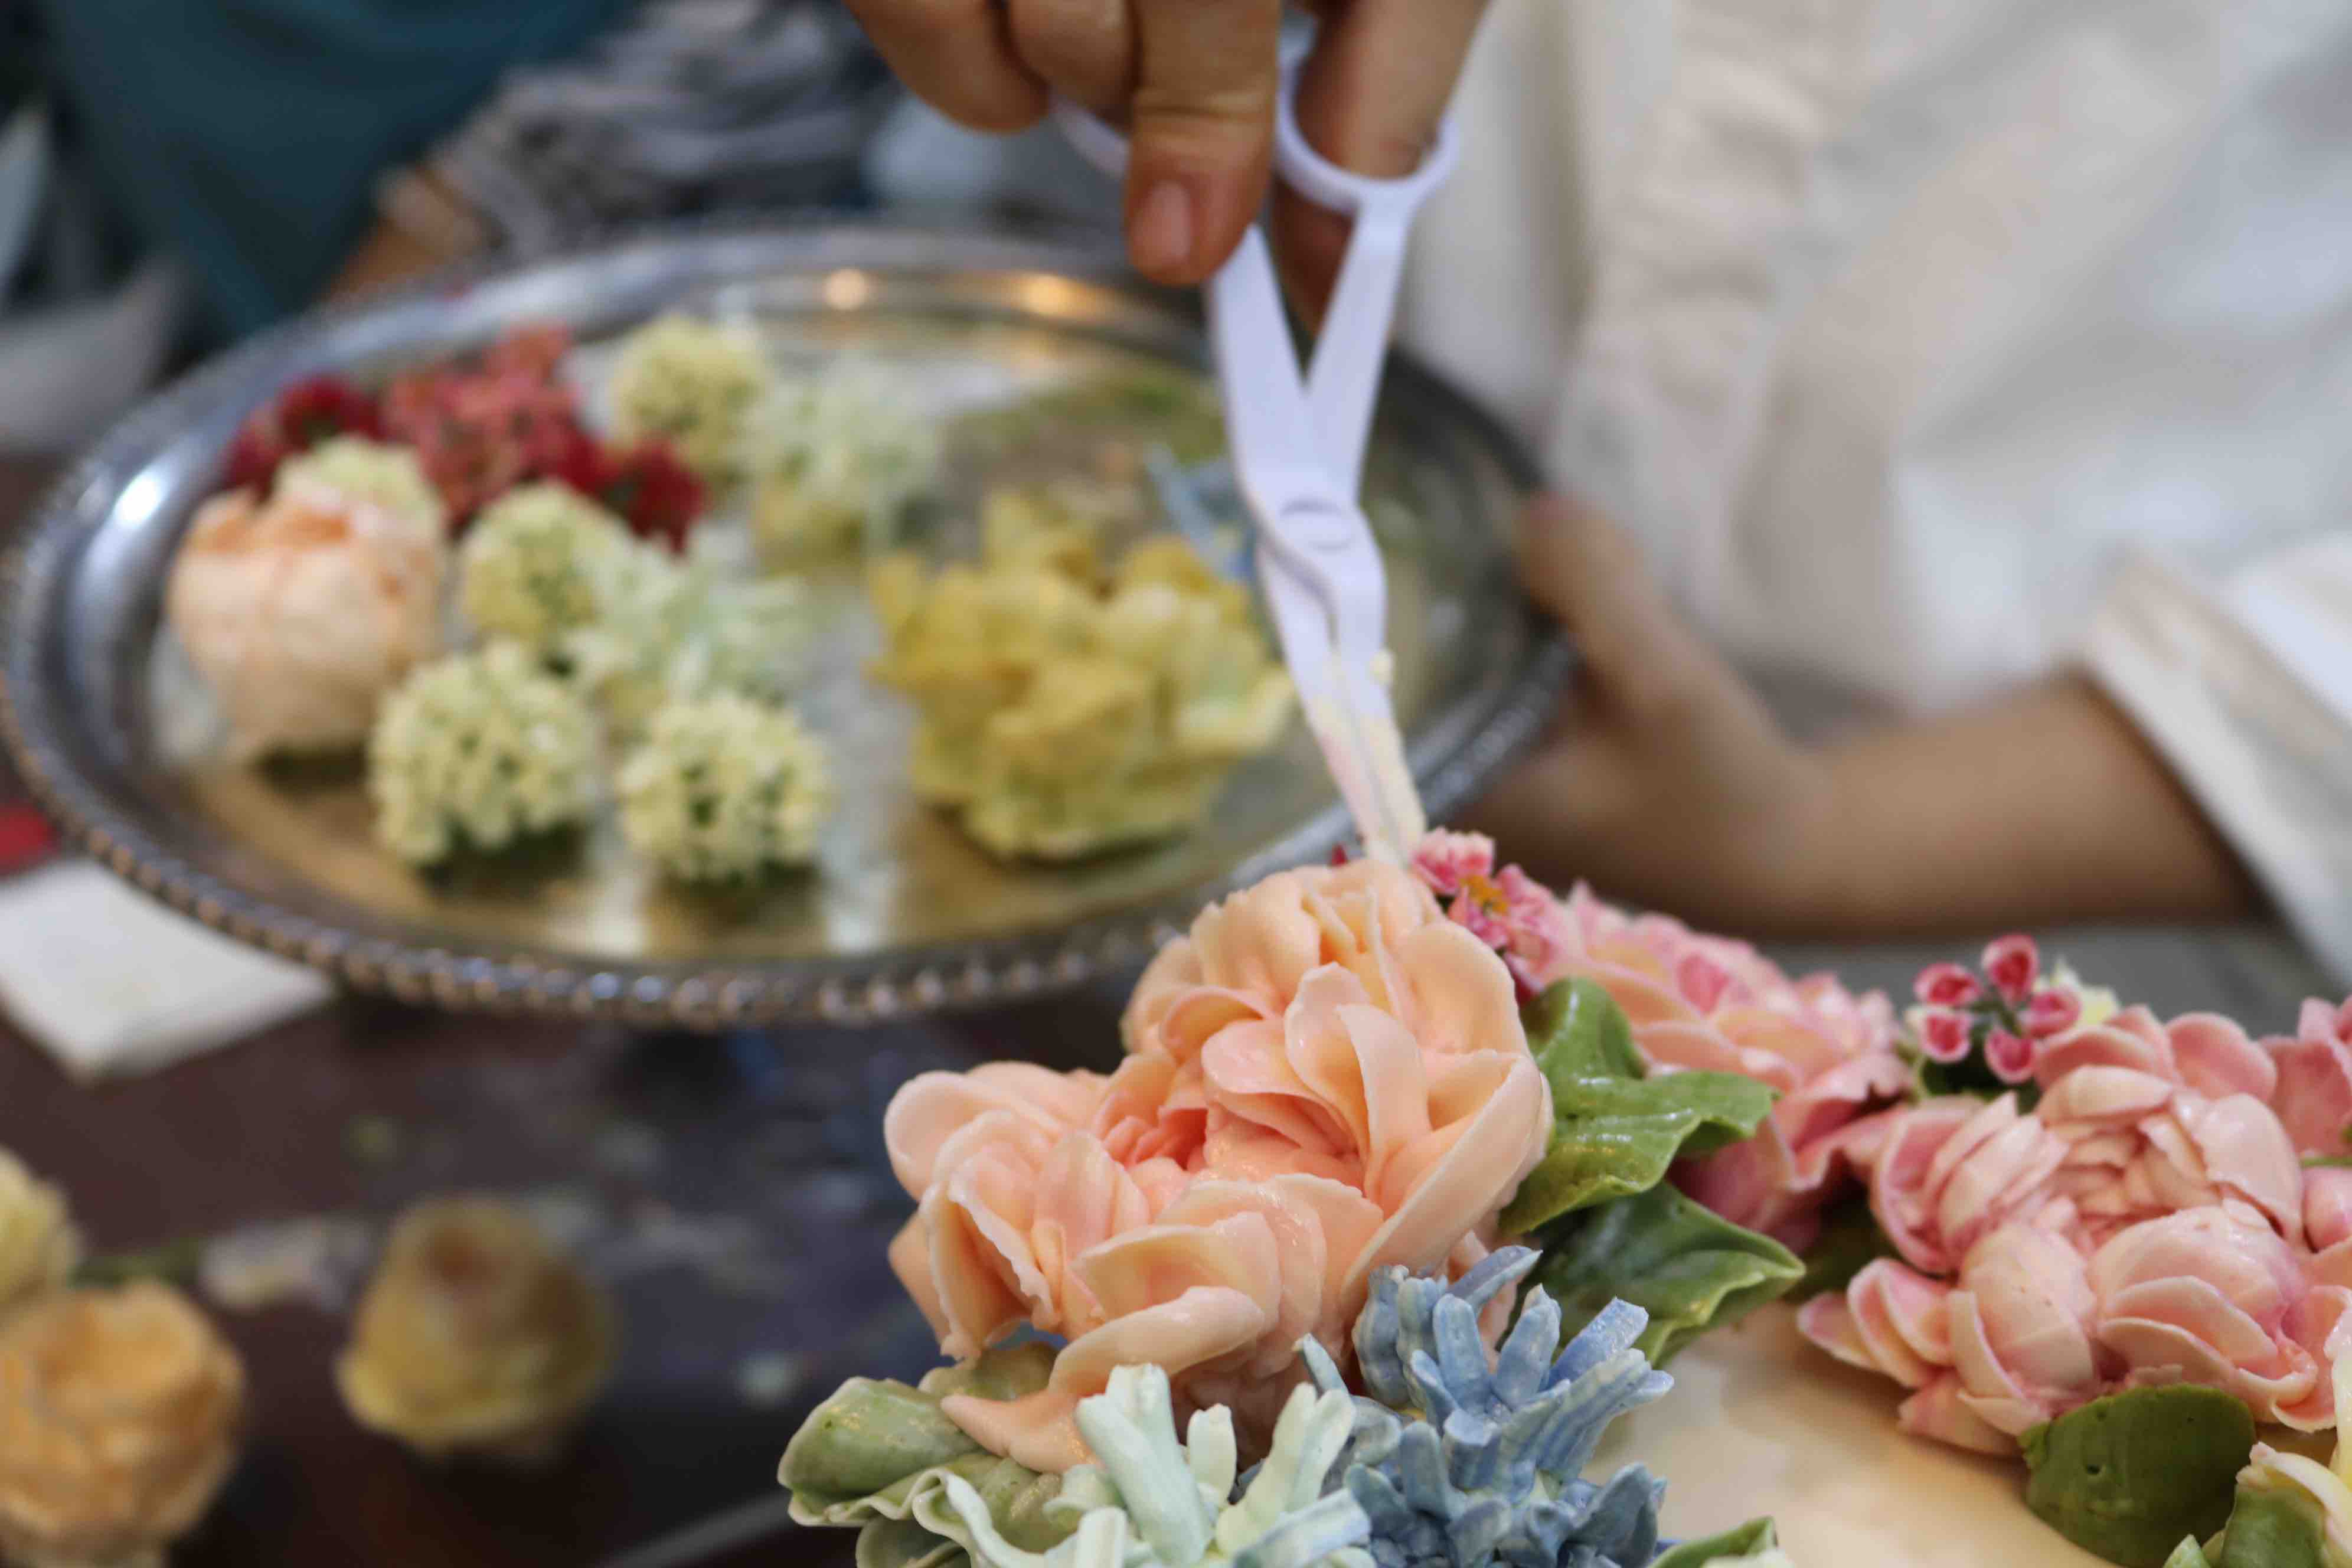 Tran showcases her skills in placing flowers on a cake at her workshop in Ho Chi Minh City. Photo: Hoang An / Tuoi Tre